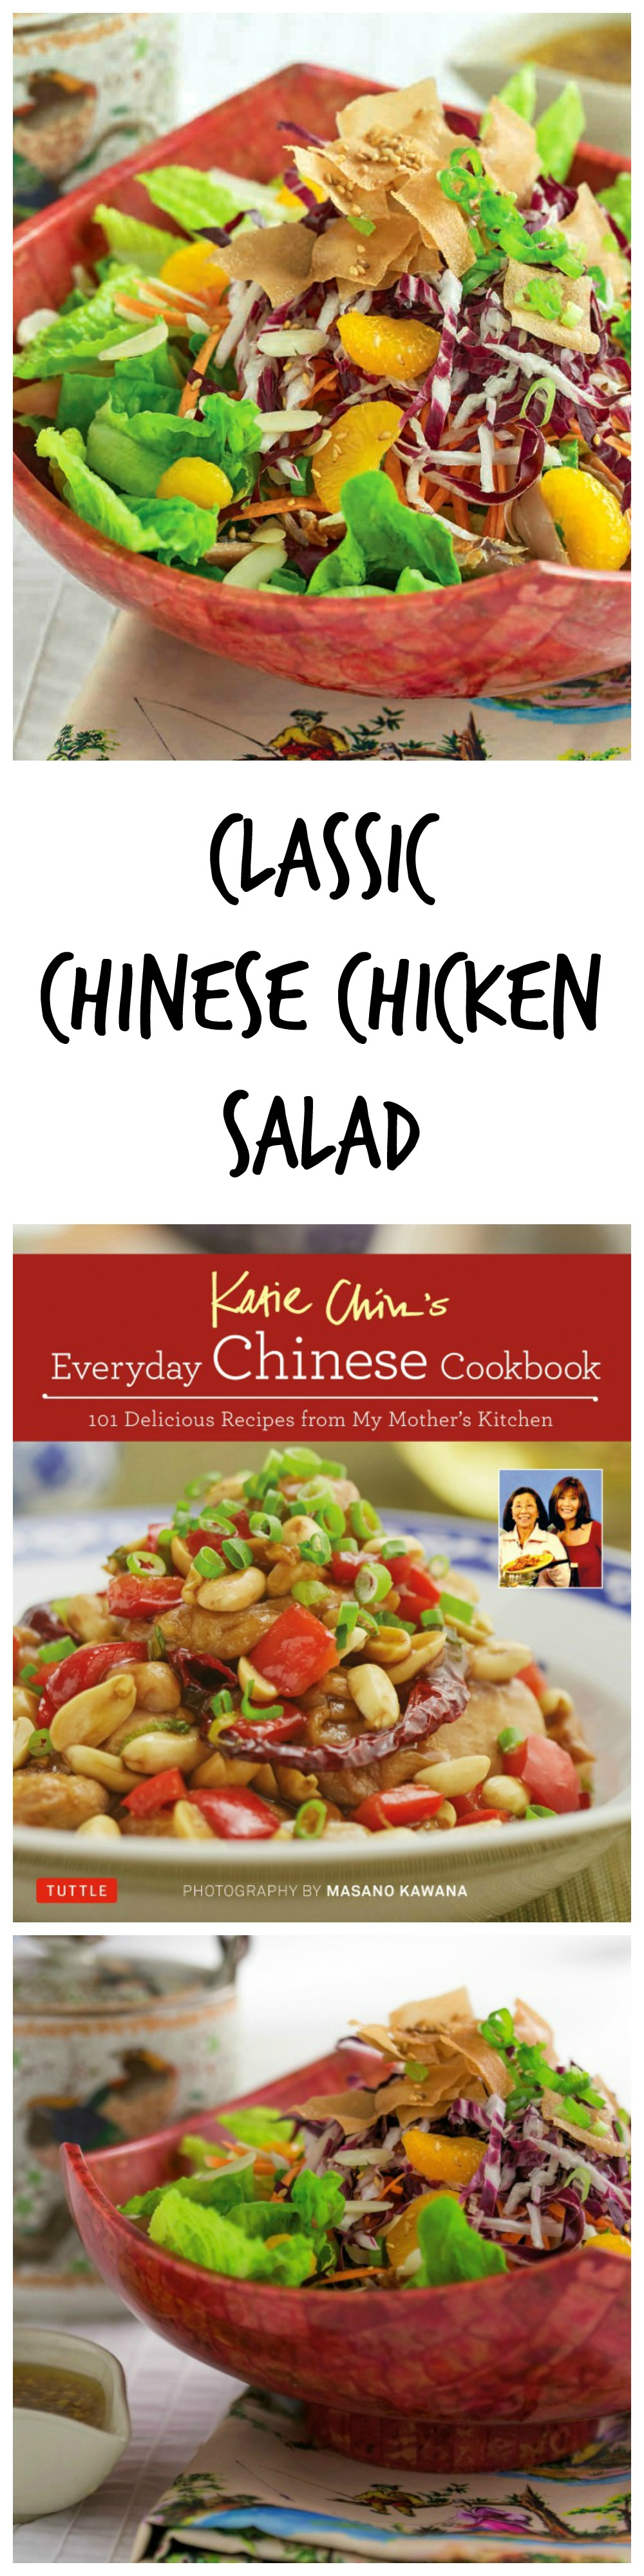 classic-chinese-chicken-salad-from-katie-chins-everyday-chinese-cookbook-on-shockinglydelicious-com